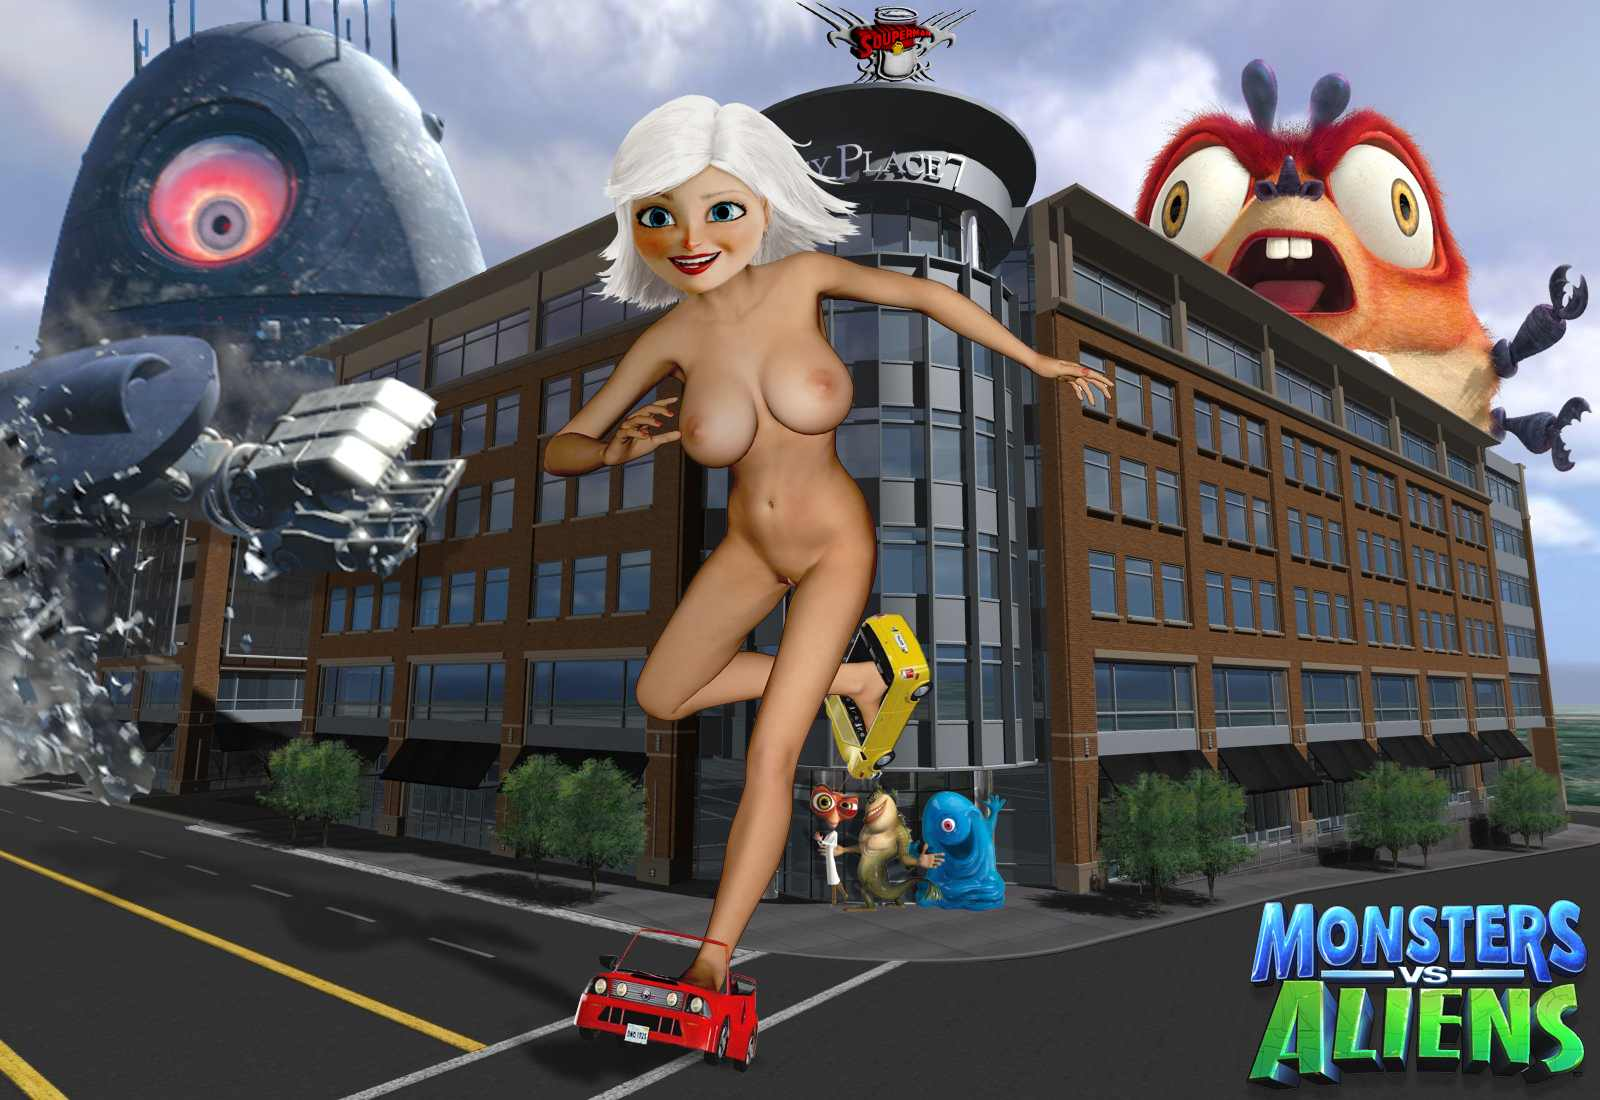 Monsters vs aliens porn photos sex photos